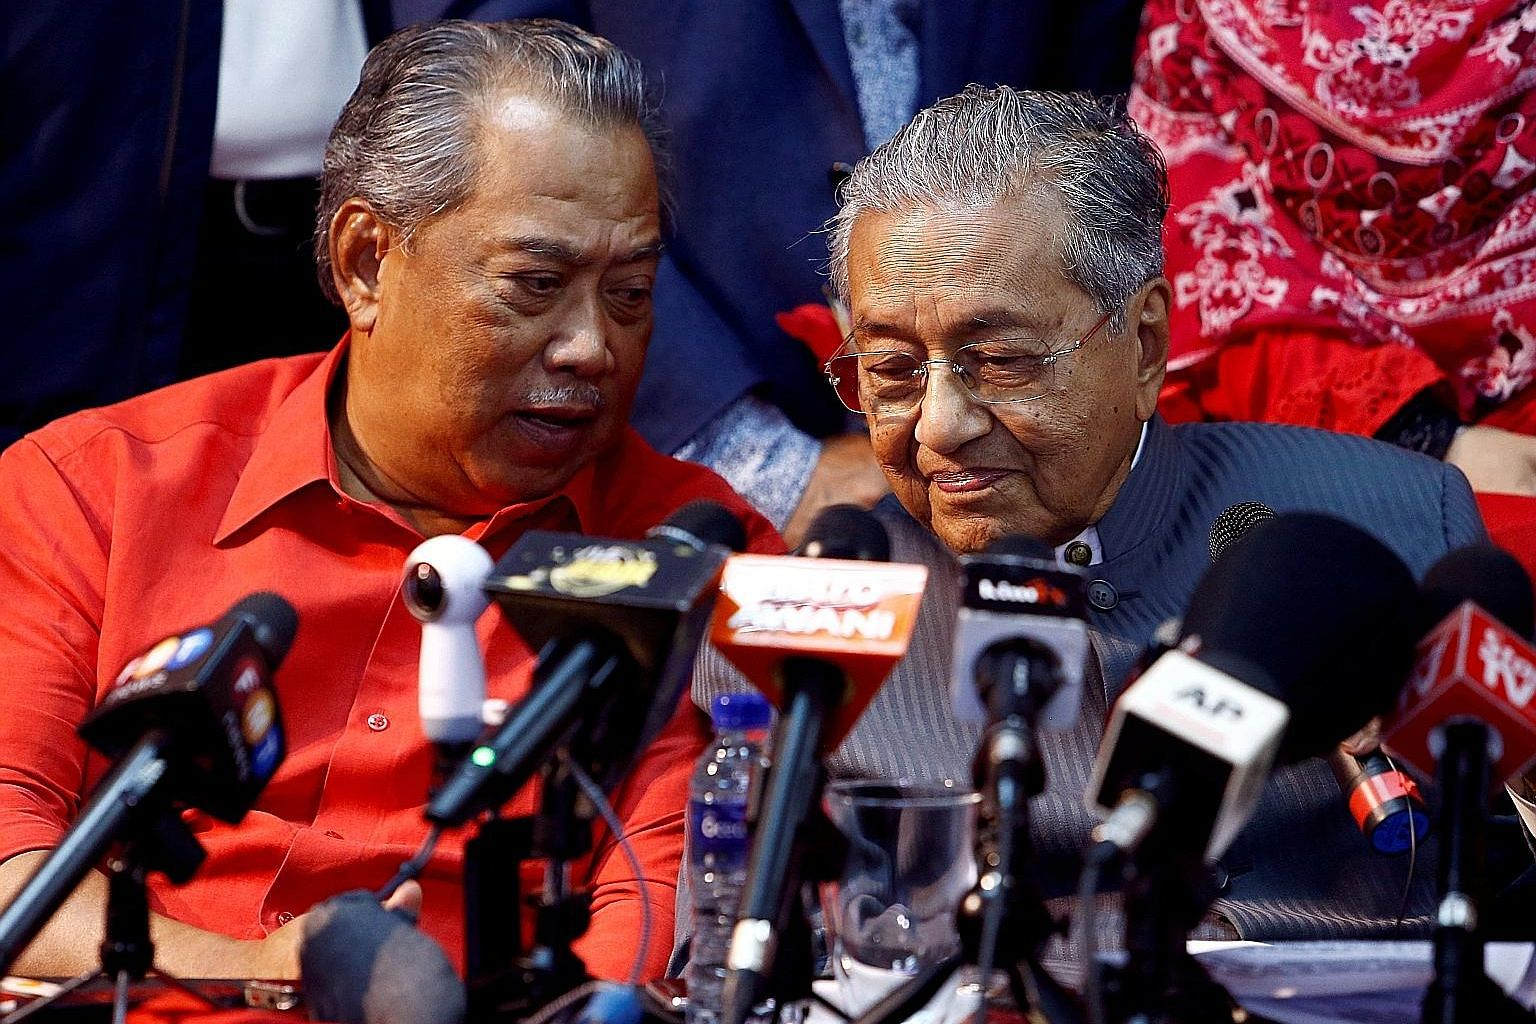 In a file photo from 2018, Tan Sri Muhyiddin Yassin (left) and Tun Dr Mahathir Mohamad are seen at a news conference. Dr Mahathir has been ejected from the party he co-founded, along with four other lawmakers who have refused to support the governmen